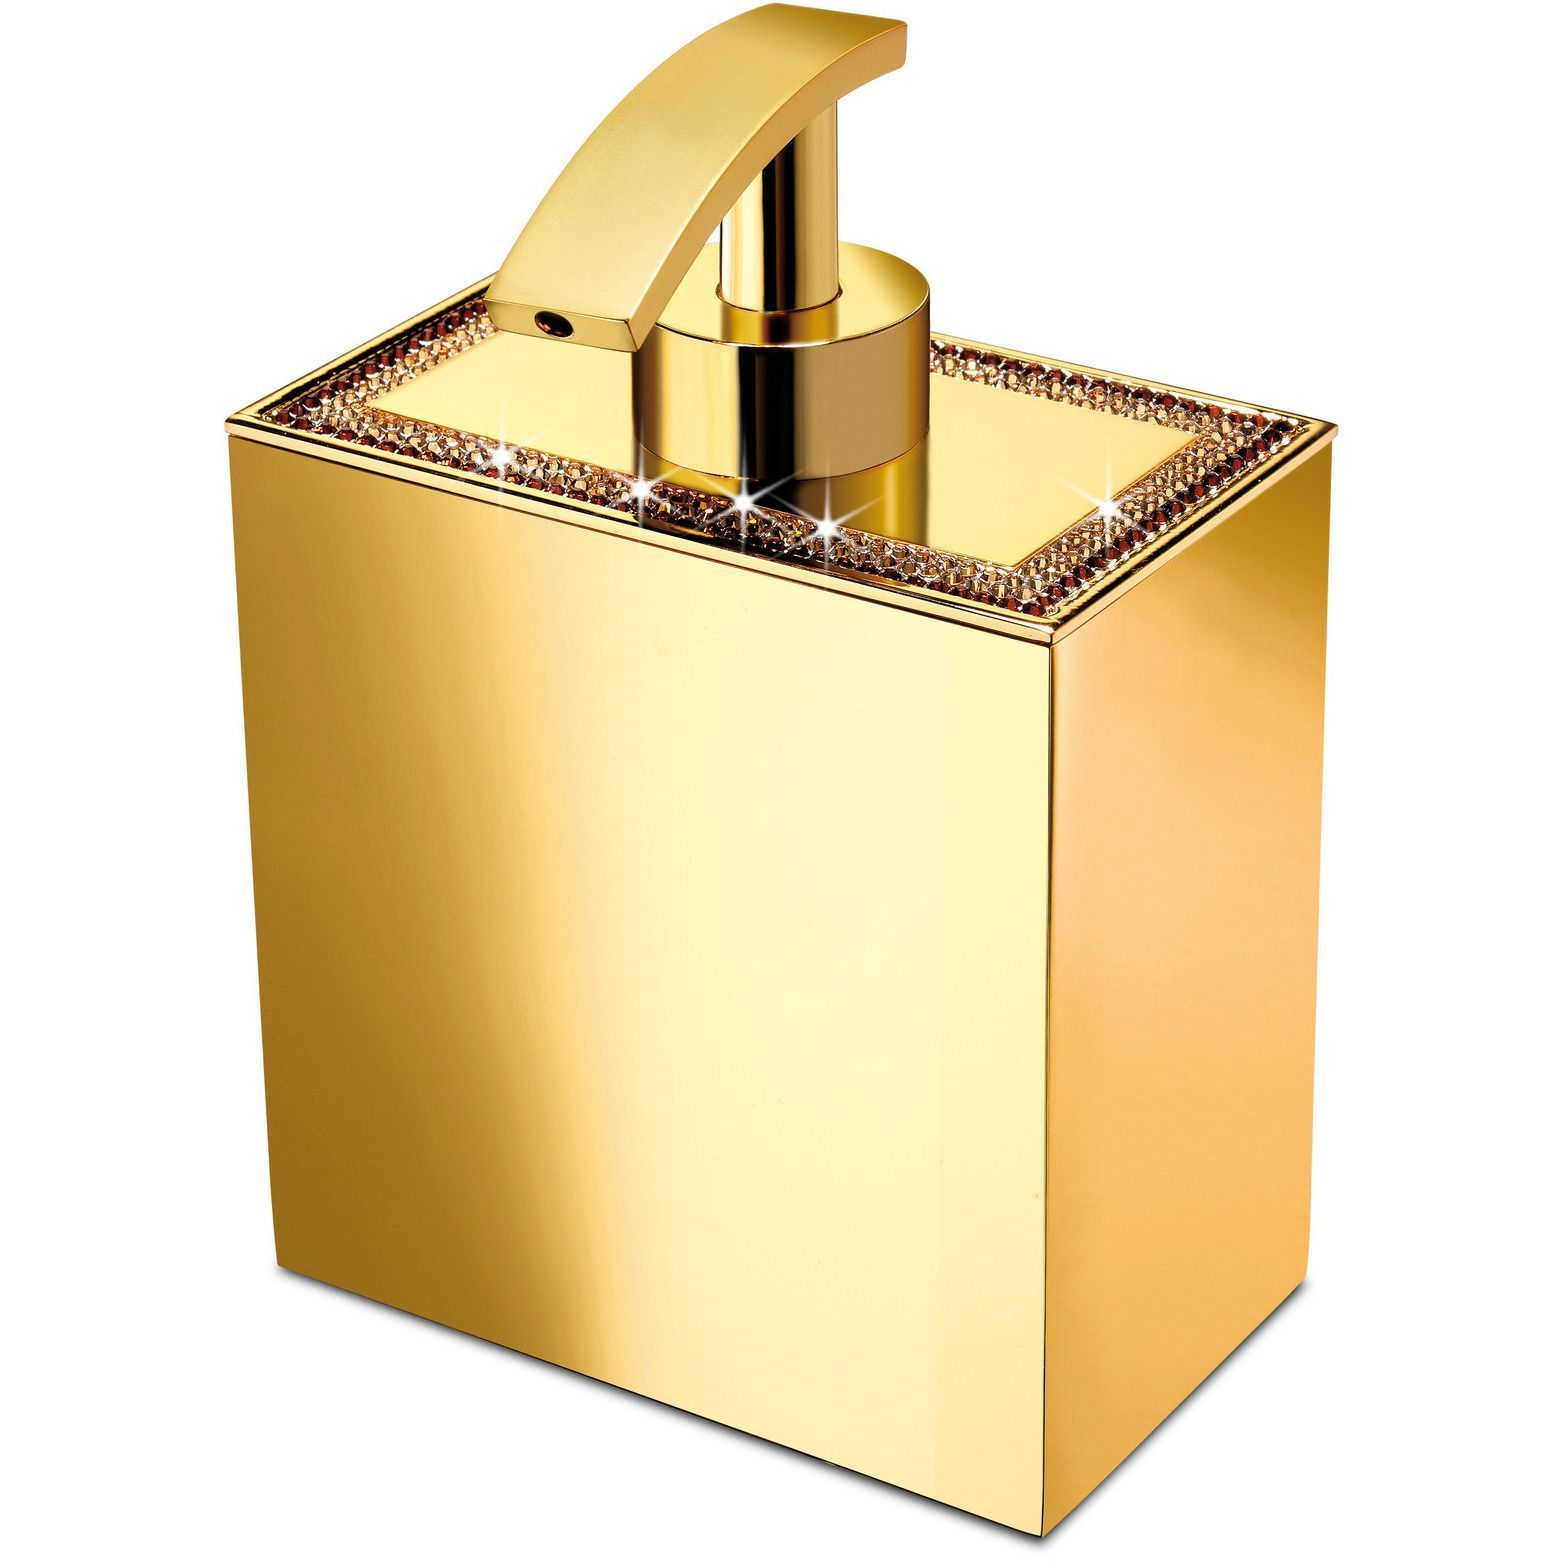 Soap Dispenser W/ Swarovski Crystals | Products, Soap dispensers ...